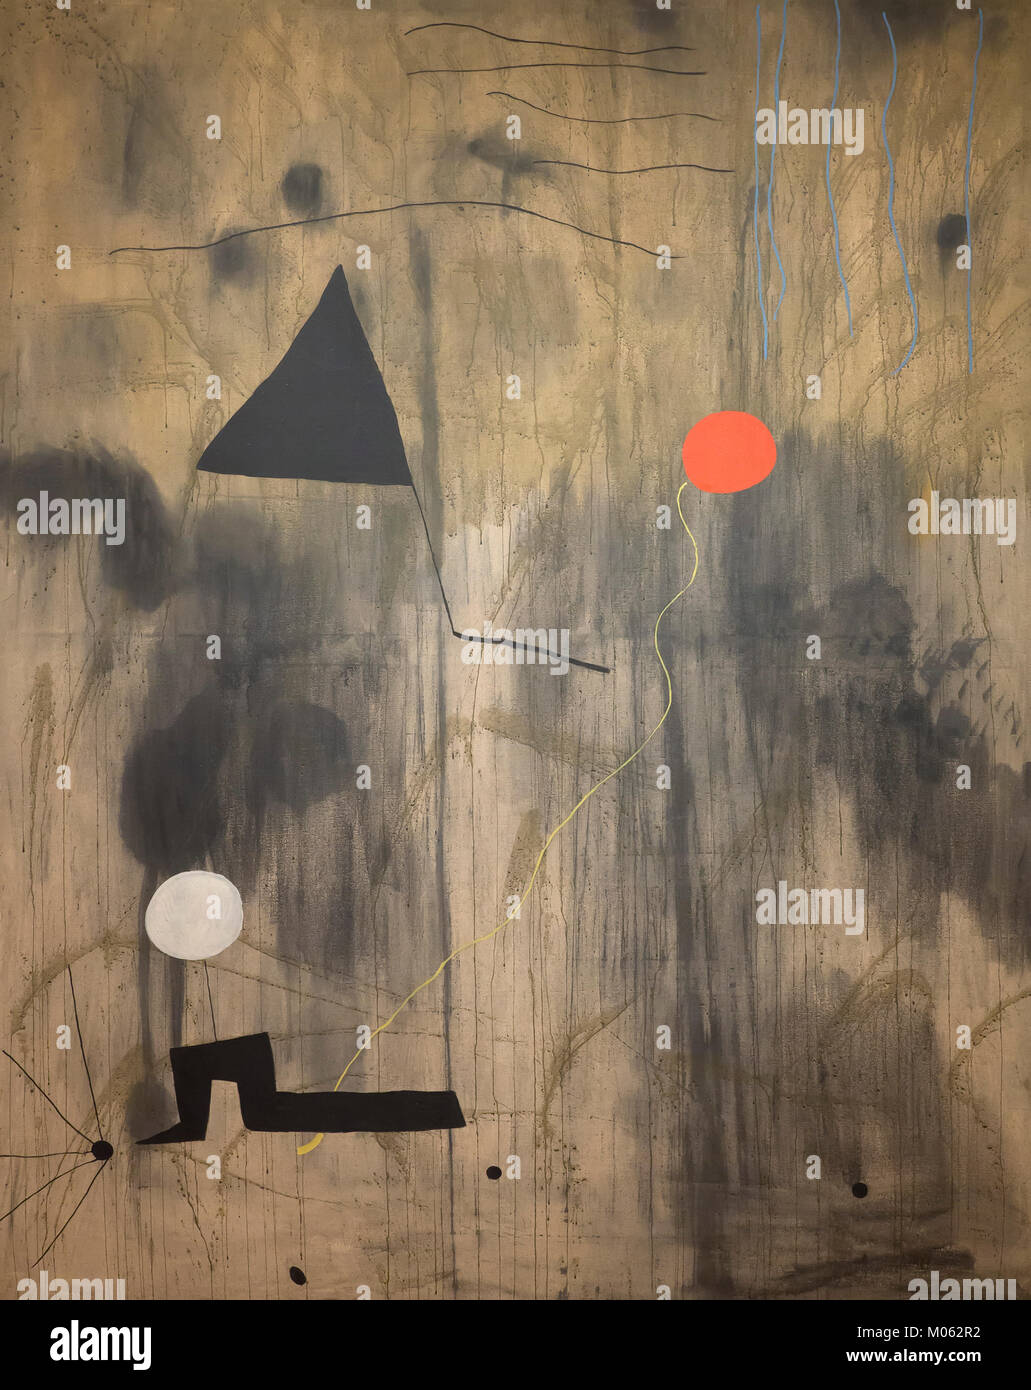 The Birth of the World, Joan Miro, 1925, - Stock Image